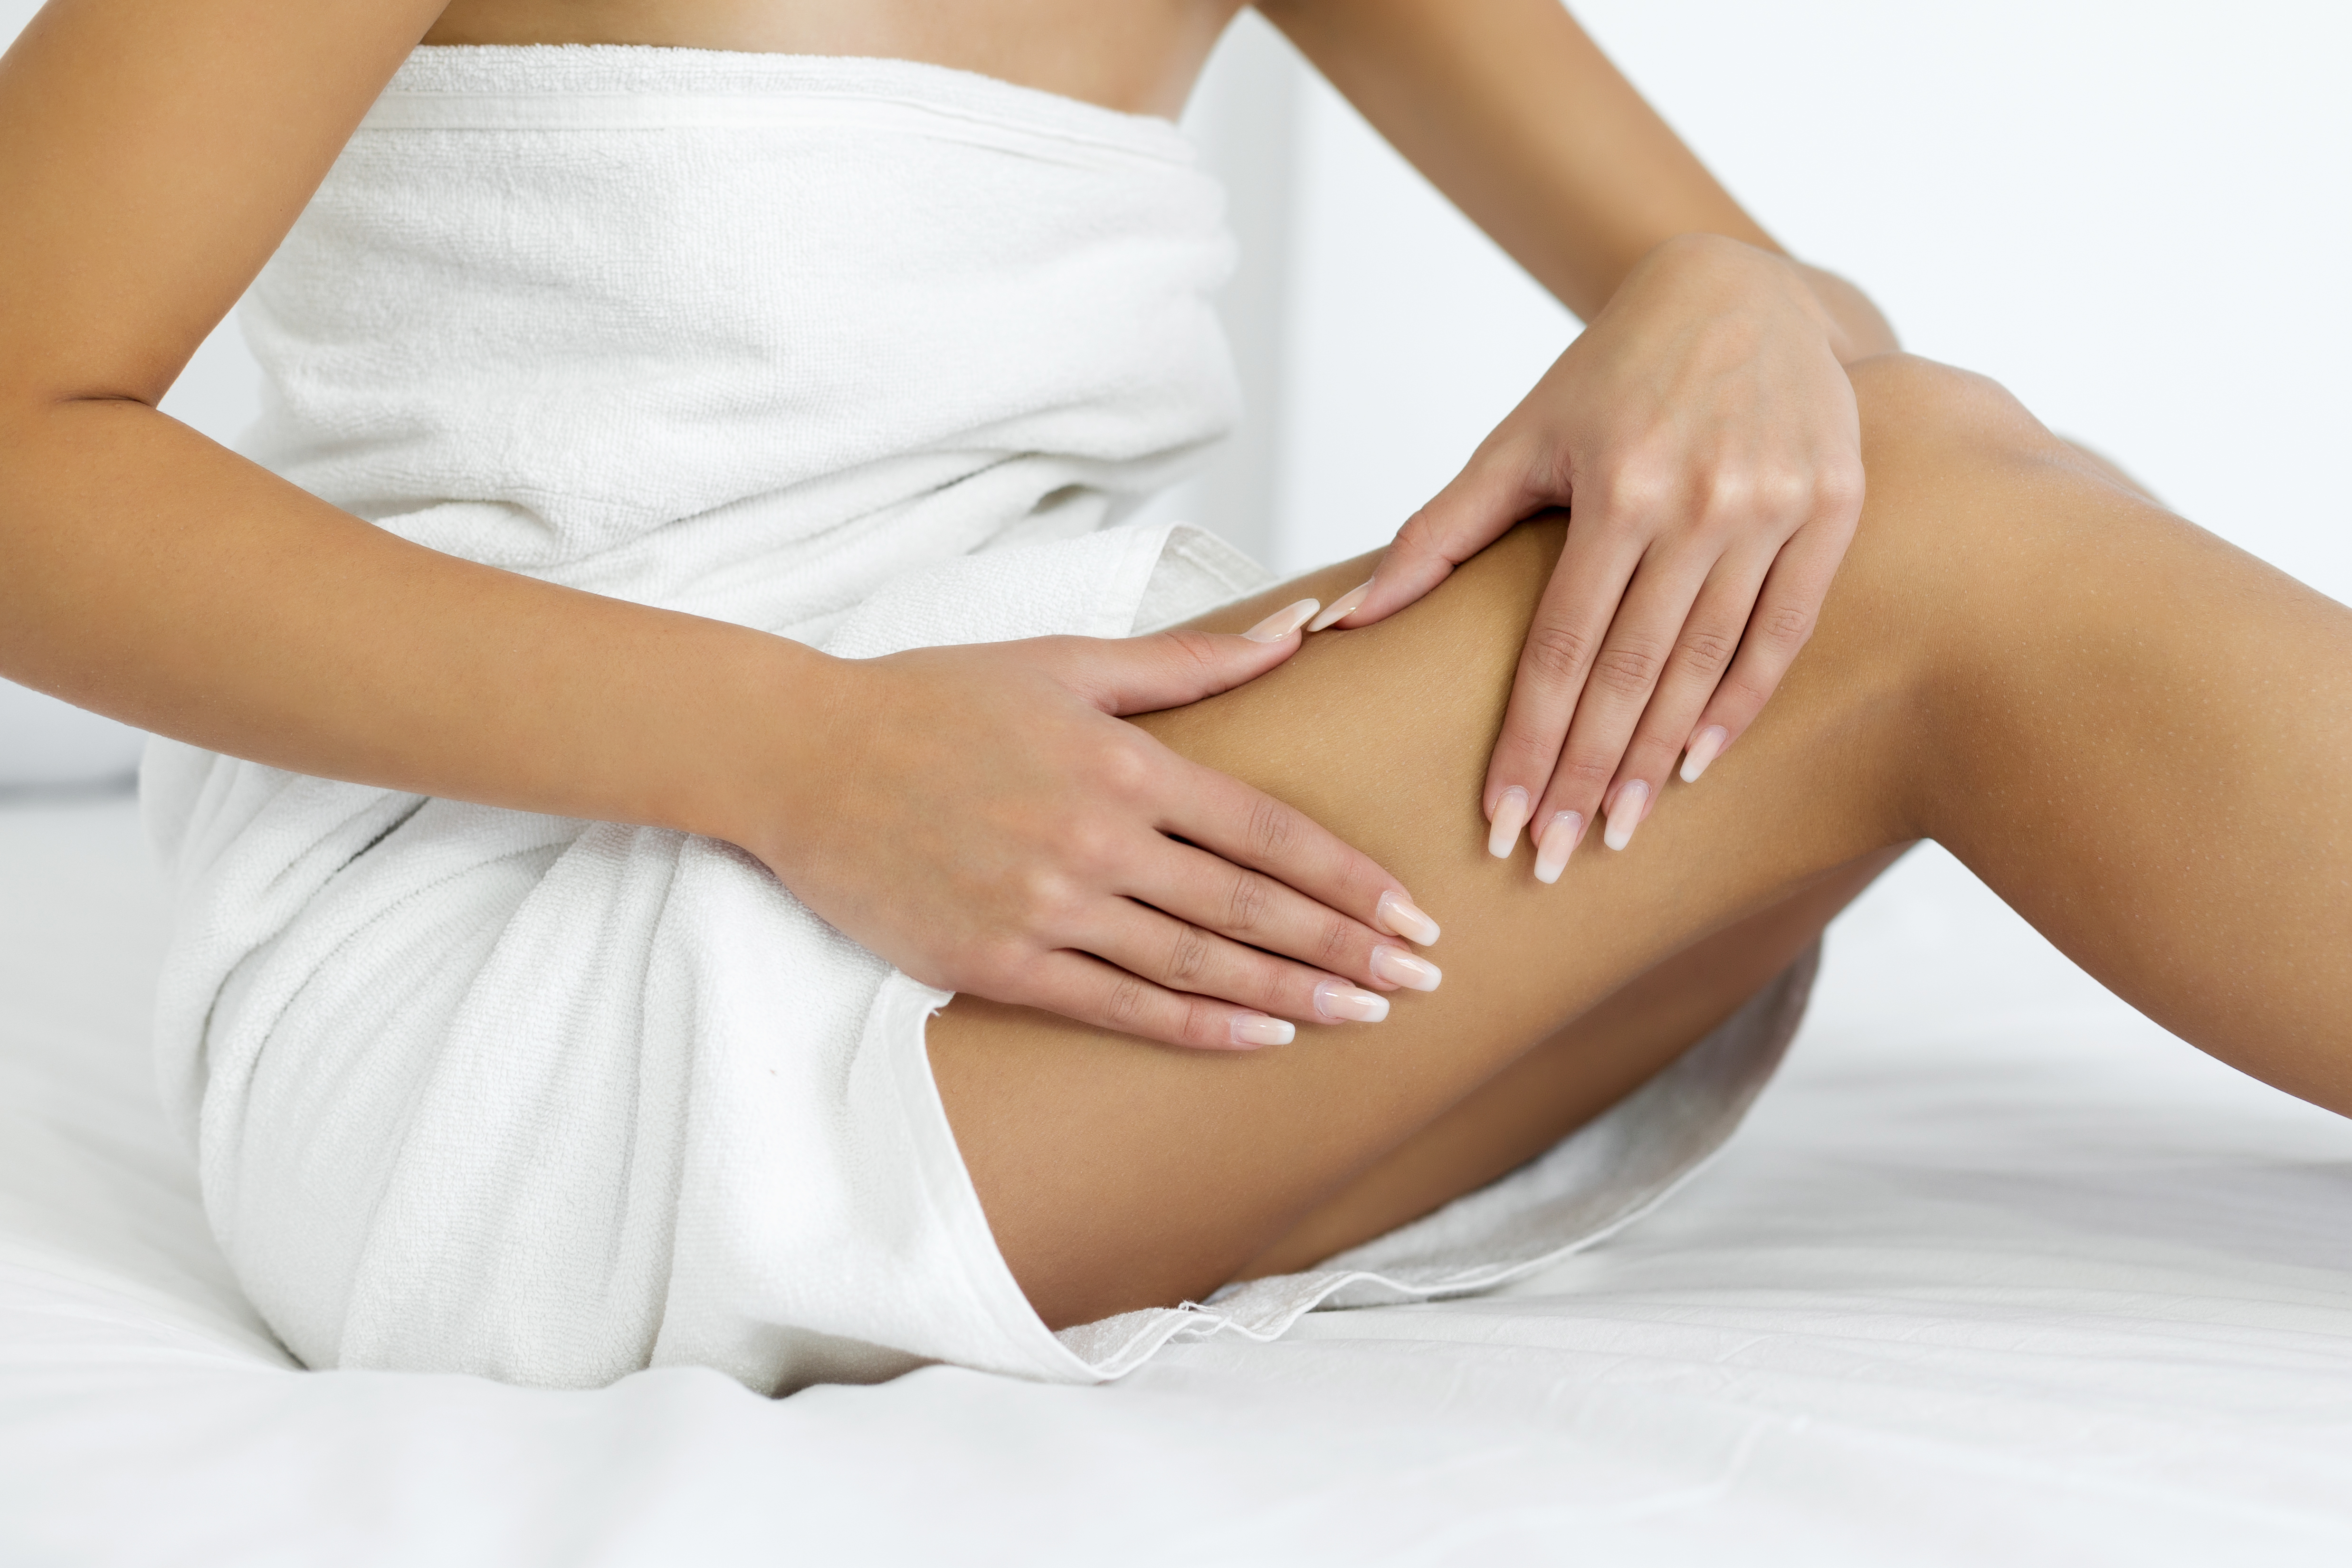 Guide To Cellulite Removal The Different Types Of Treatment